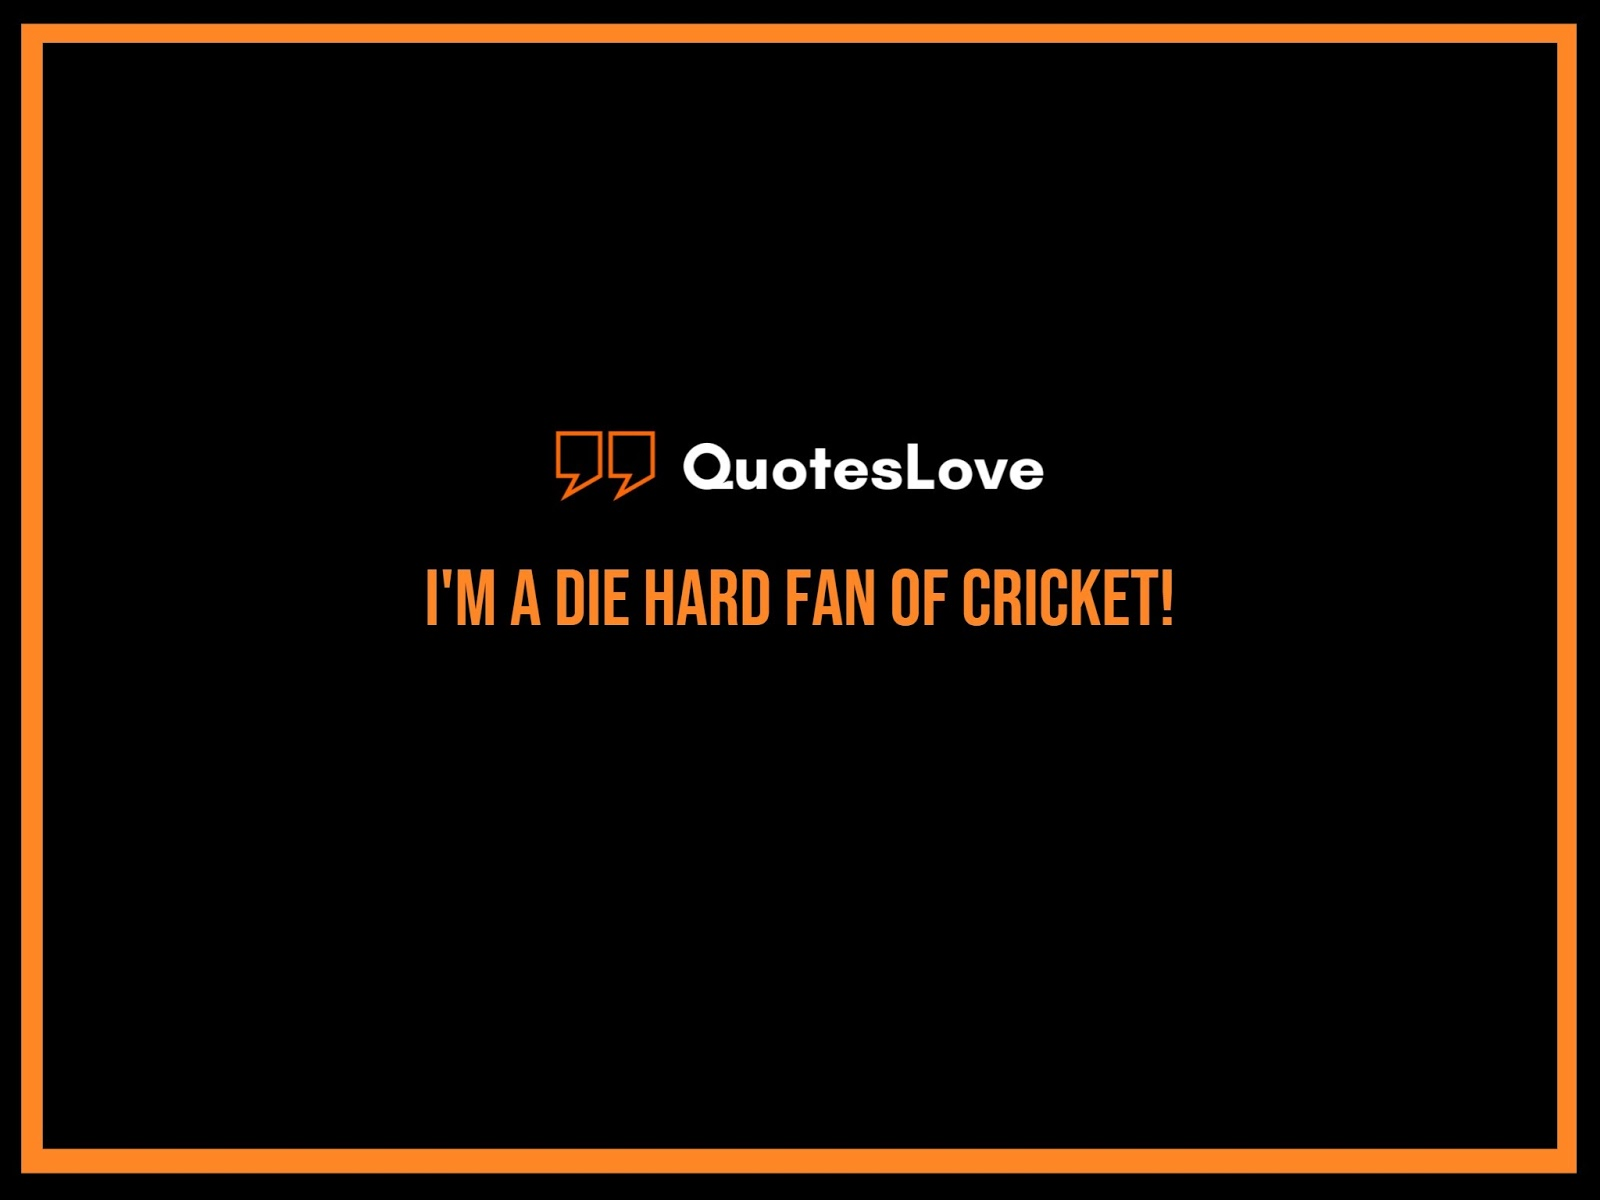 Cricket Status, Quotes, Images For Whatsapp & Facebook